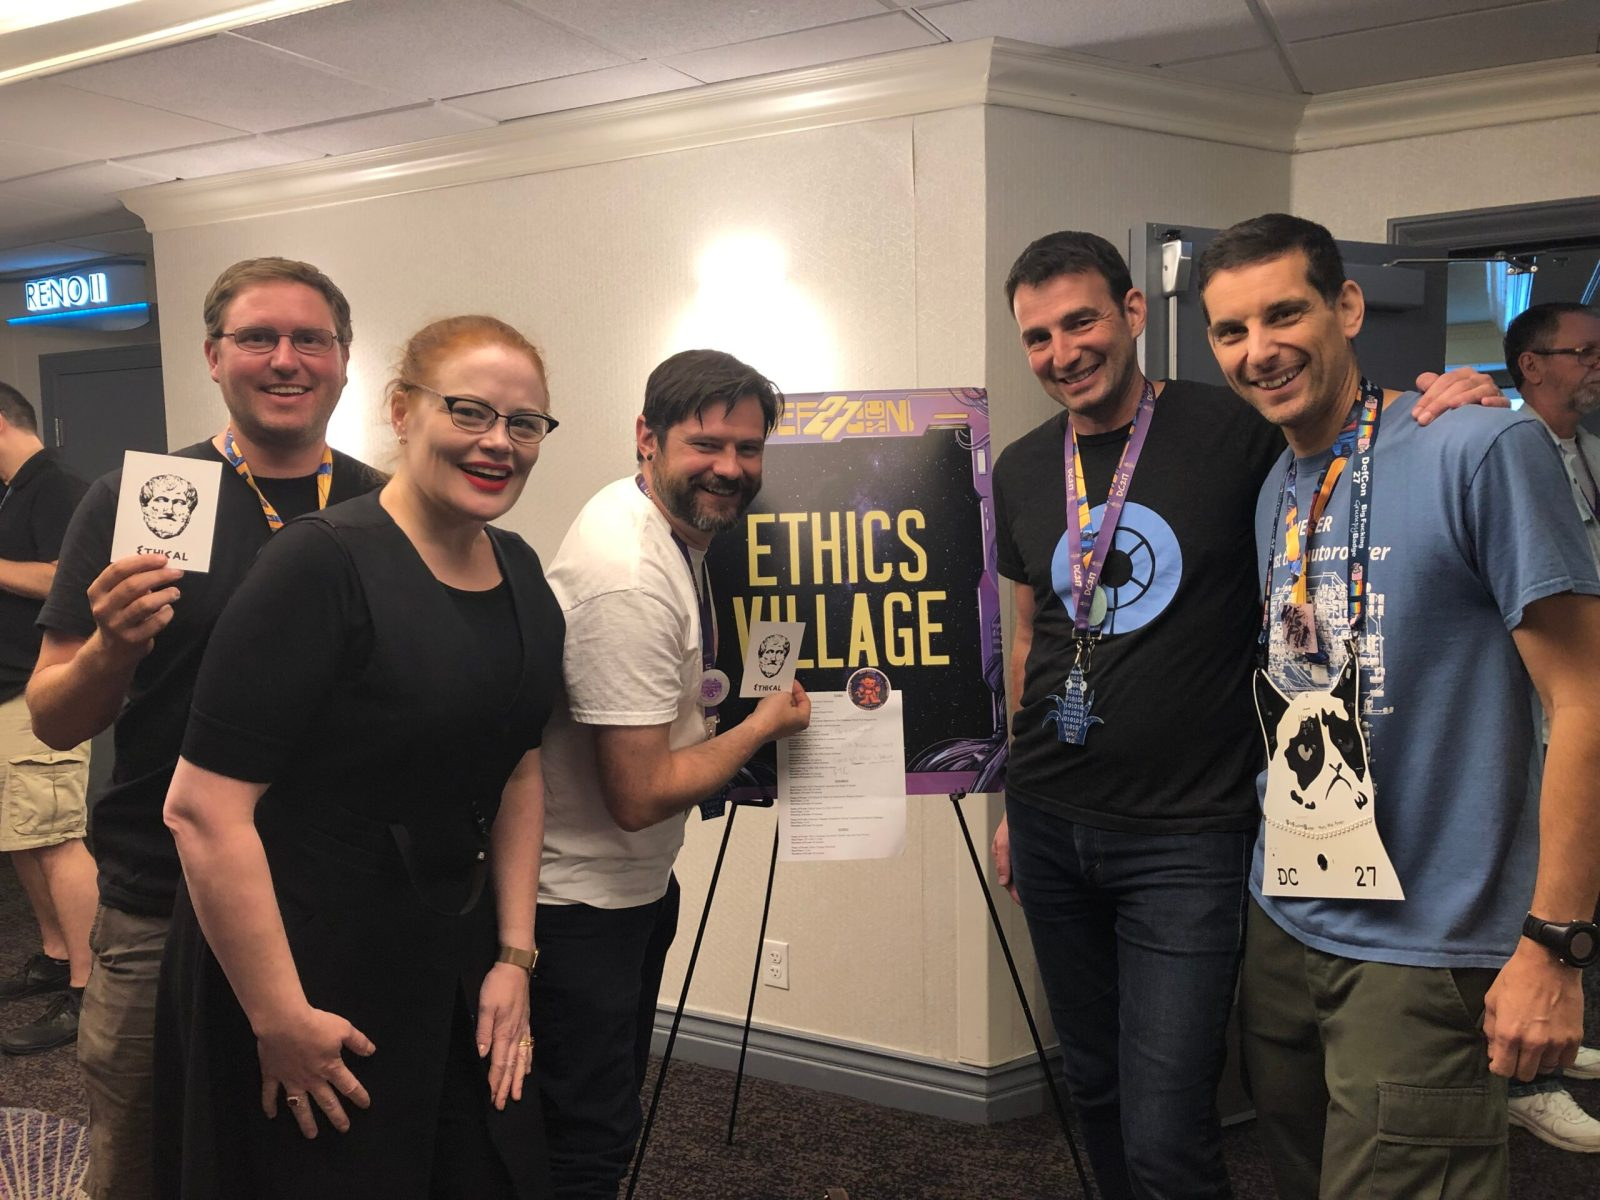 SecuRepairs Members at DEF CON Ethics Village